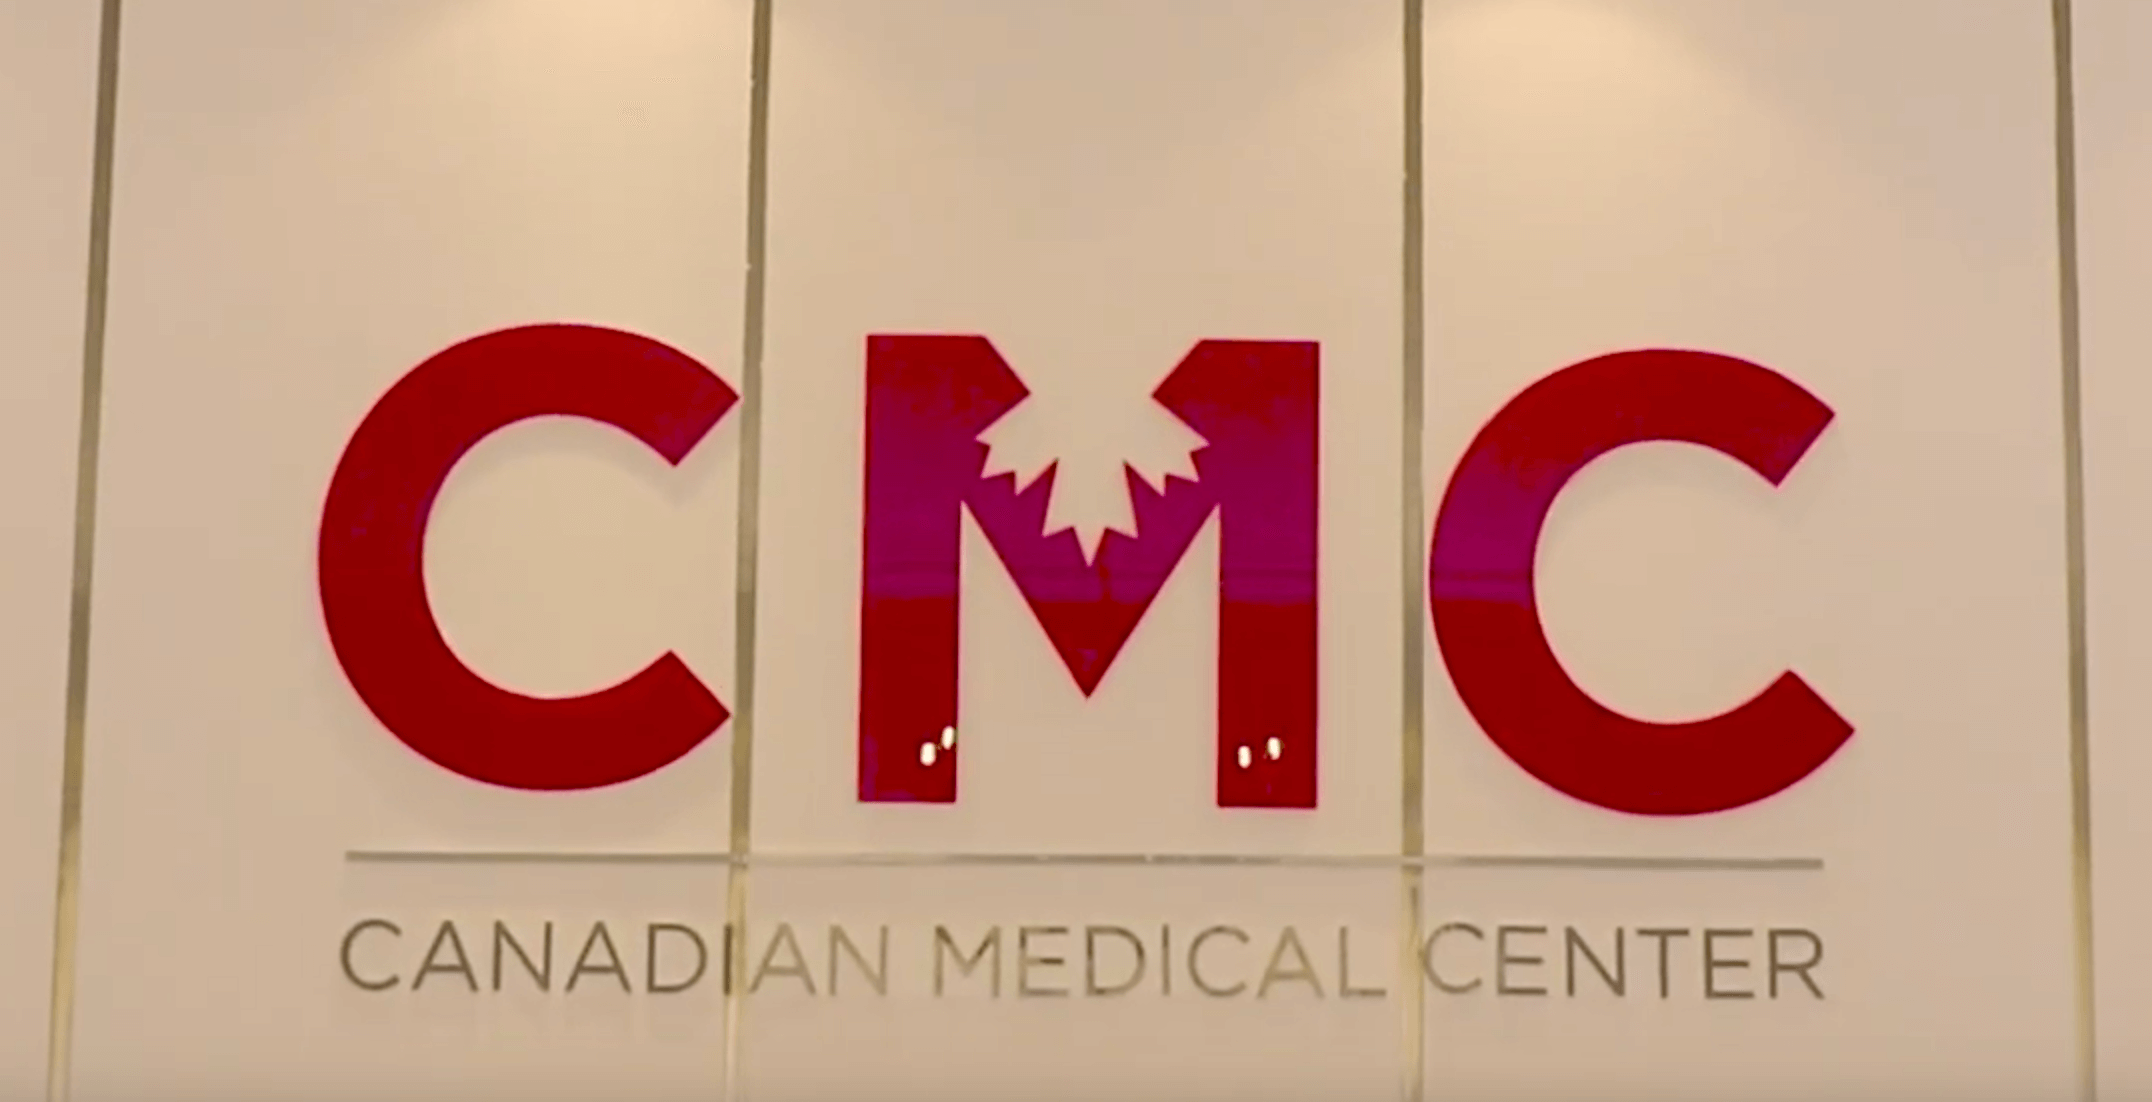 Canadian Medical Center 5